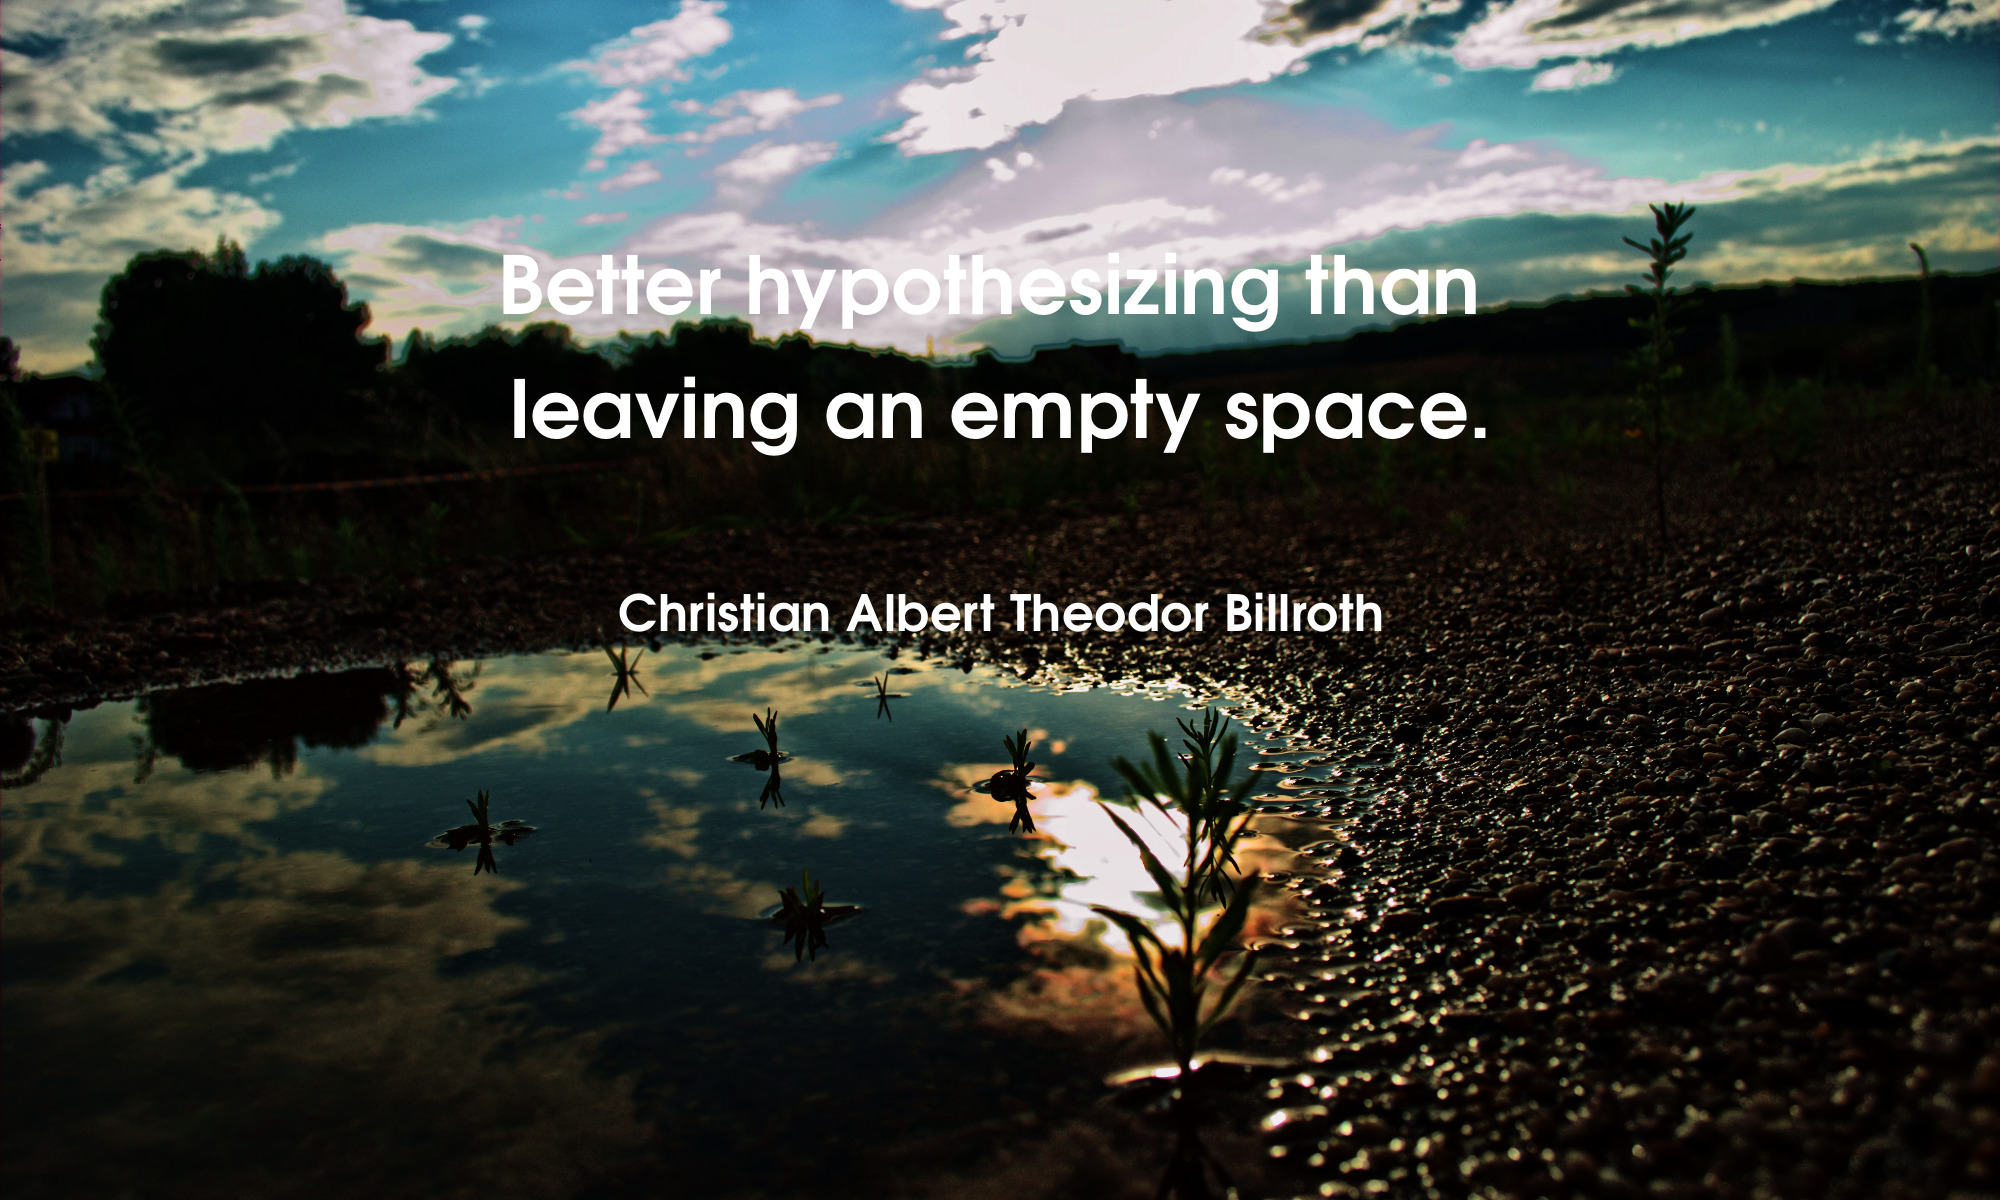 Better hypothesizing than leaving an empty space.